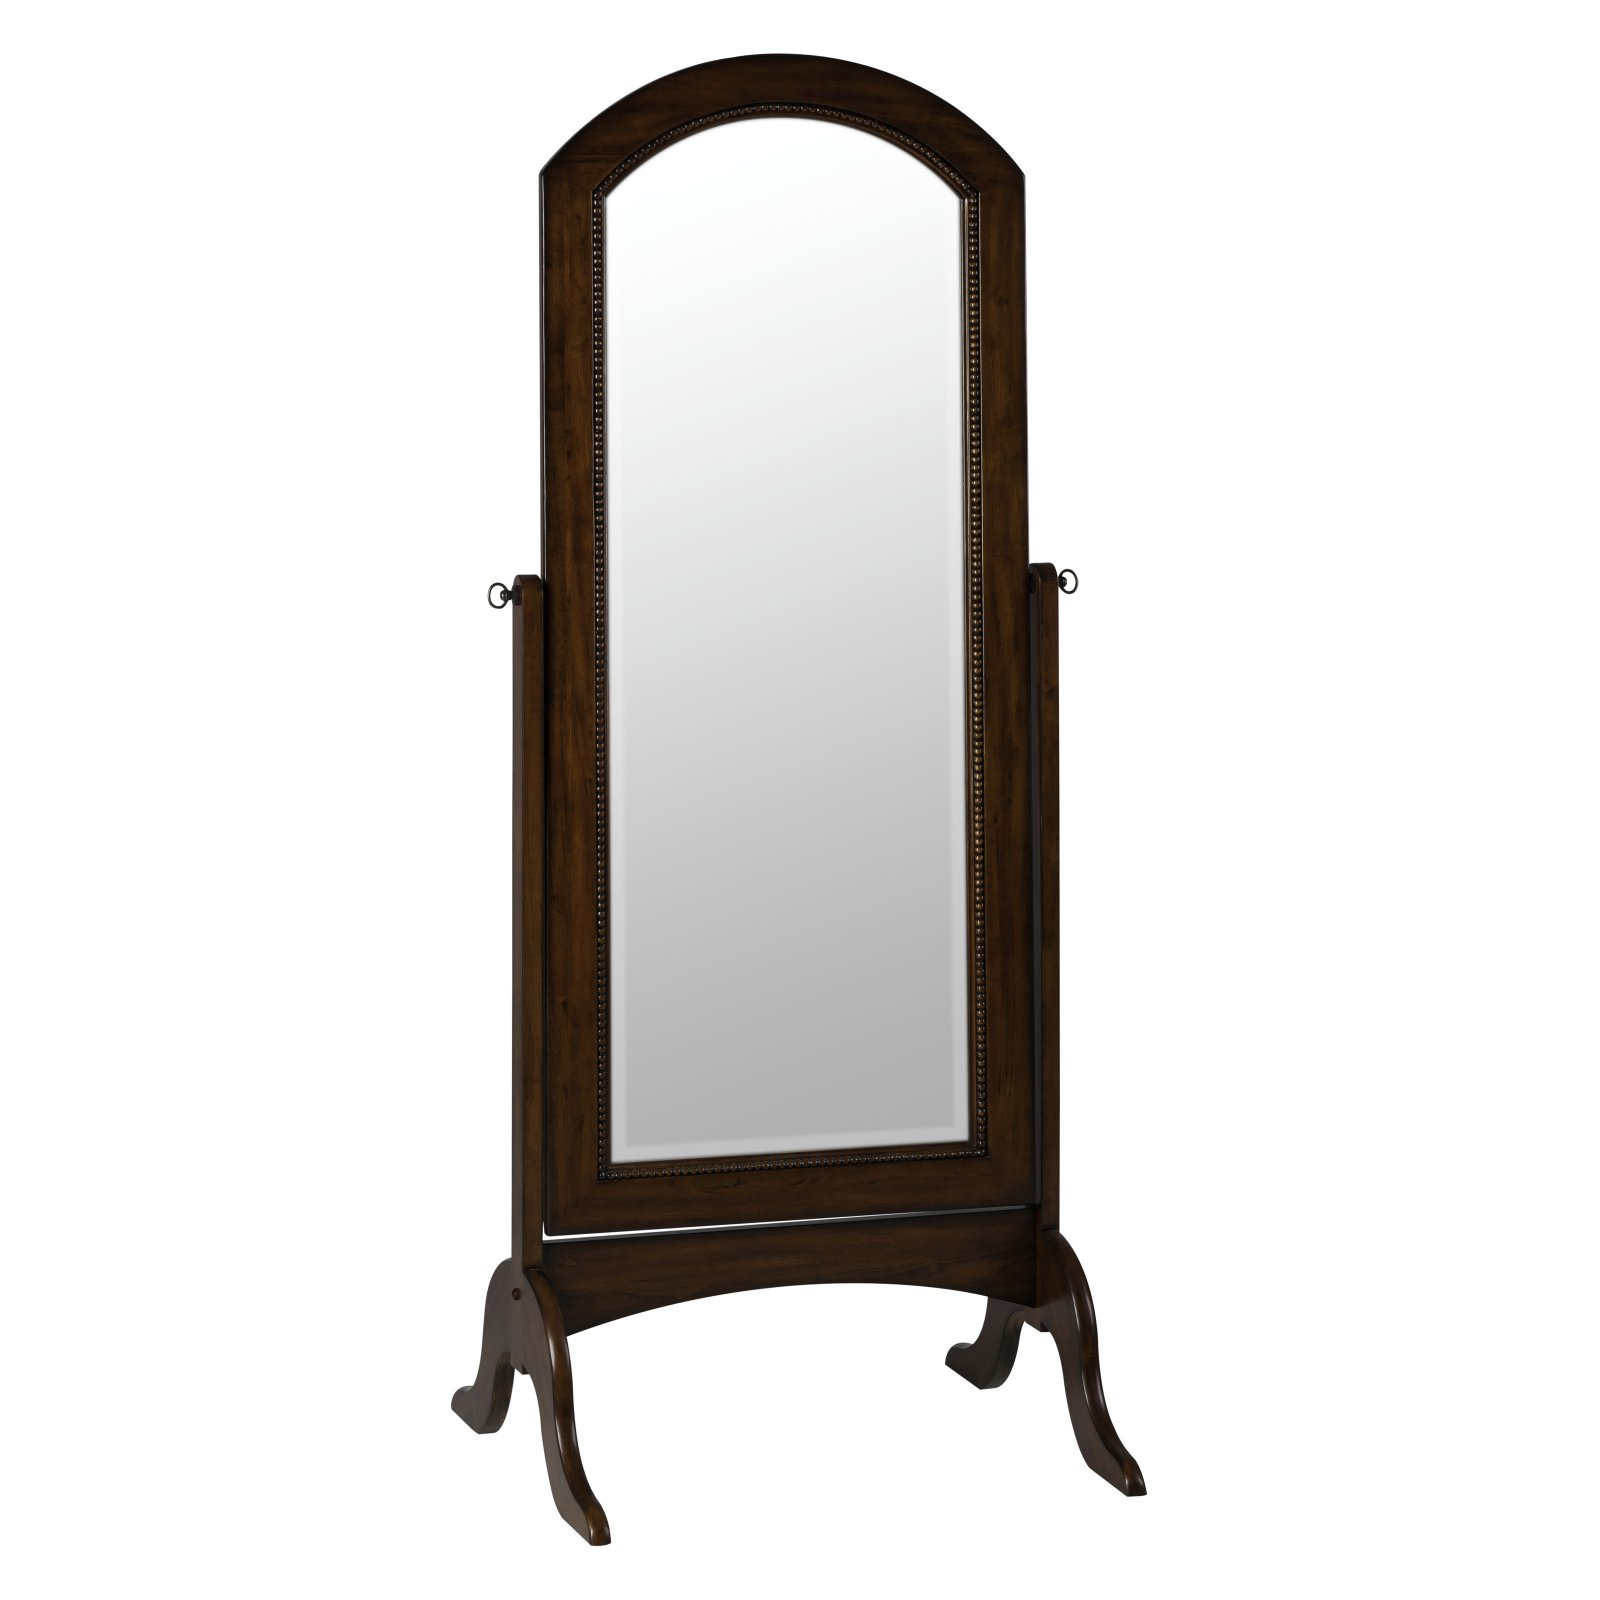 Laurel Cheval Mirror 26.5W x 68H in. by Cooper Classics